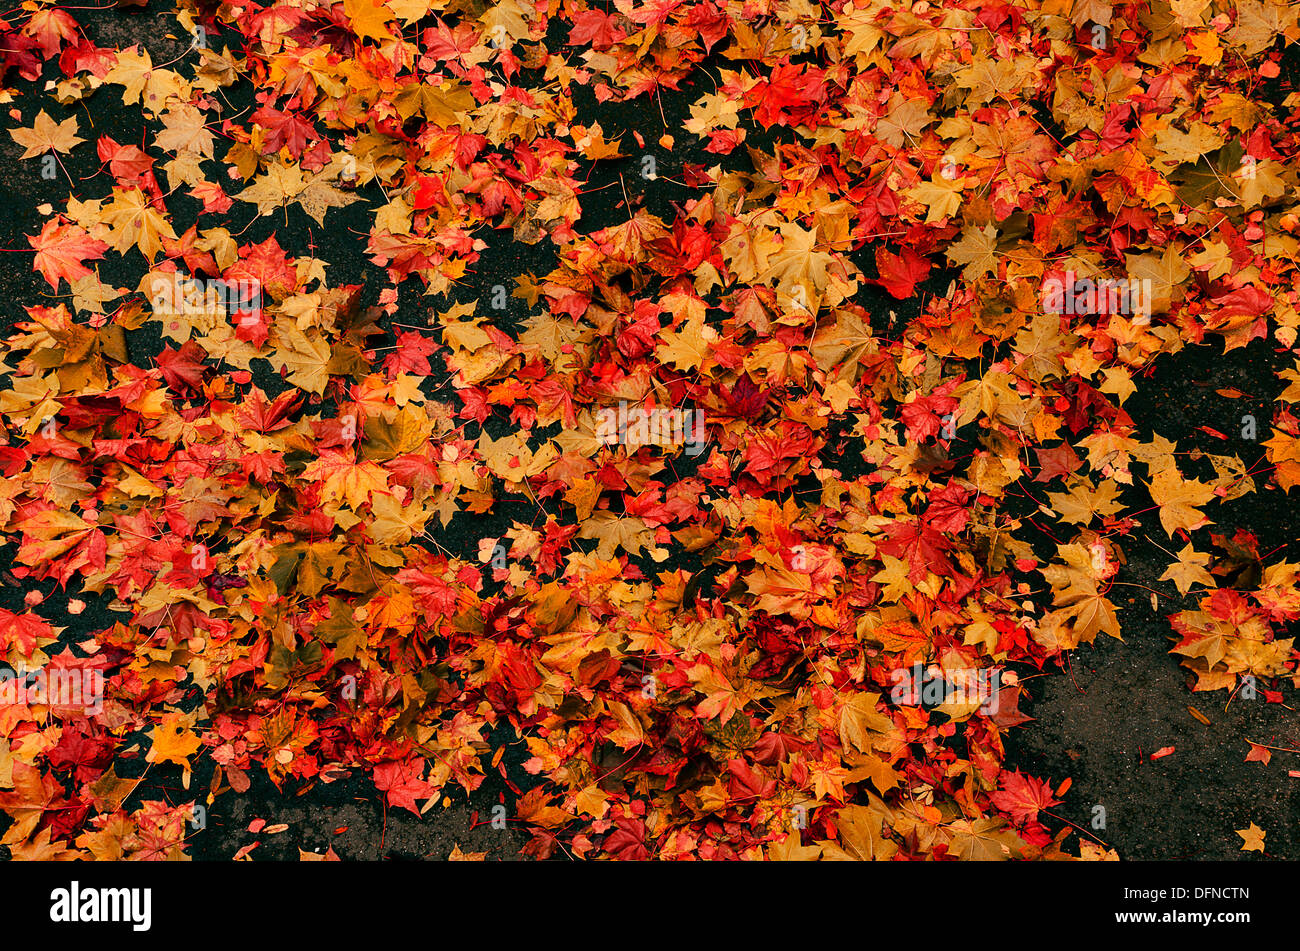 Autumn Fall Live Wallpaper Autumn Scene Of Fallen Red Amp Yellow Plane Tree Leaves On